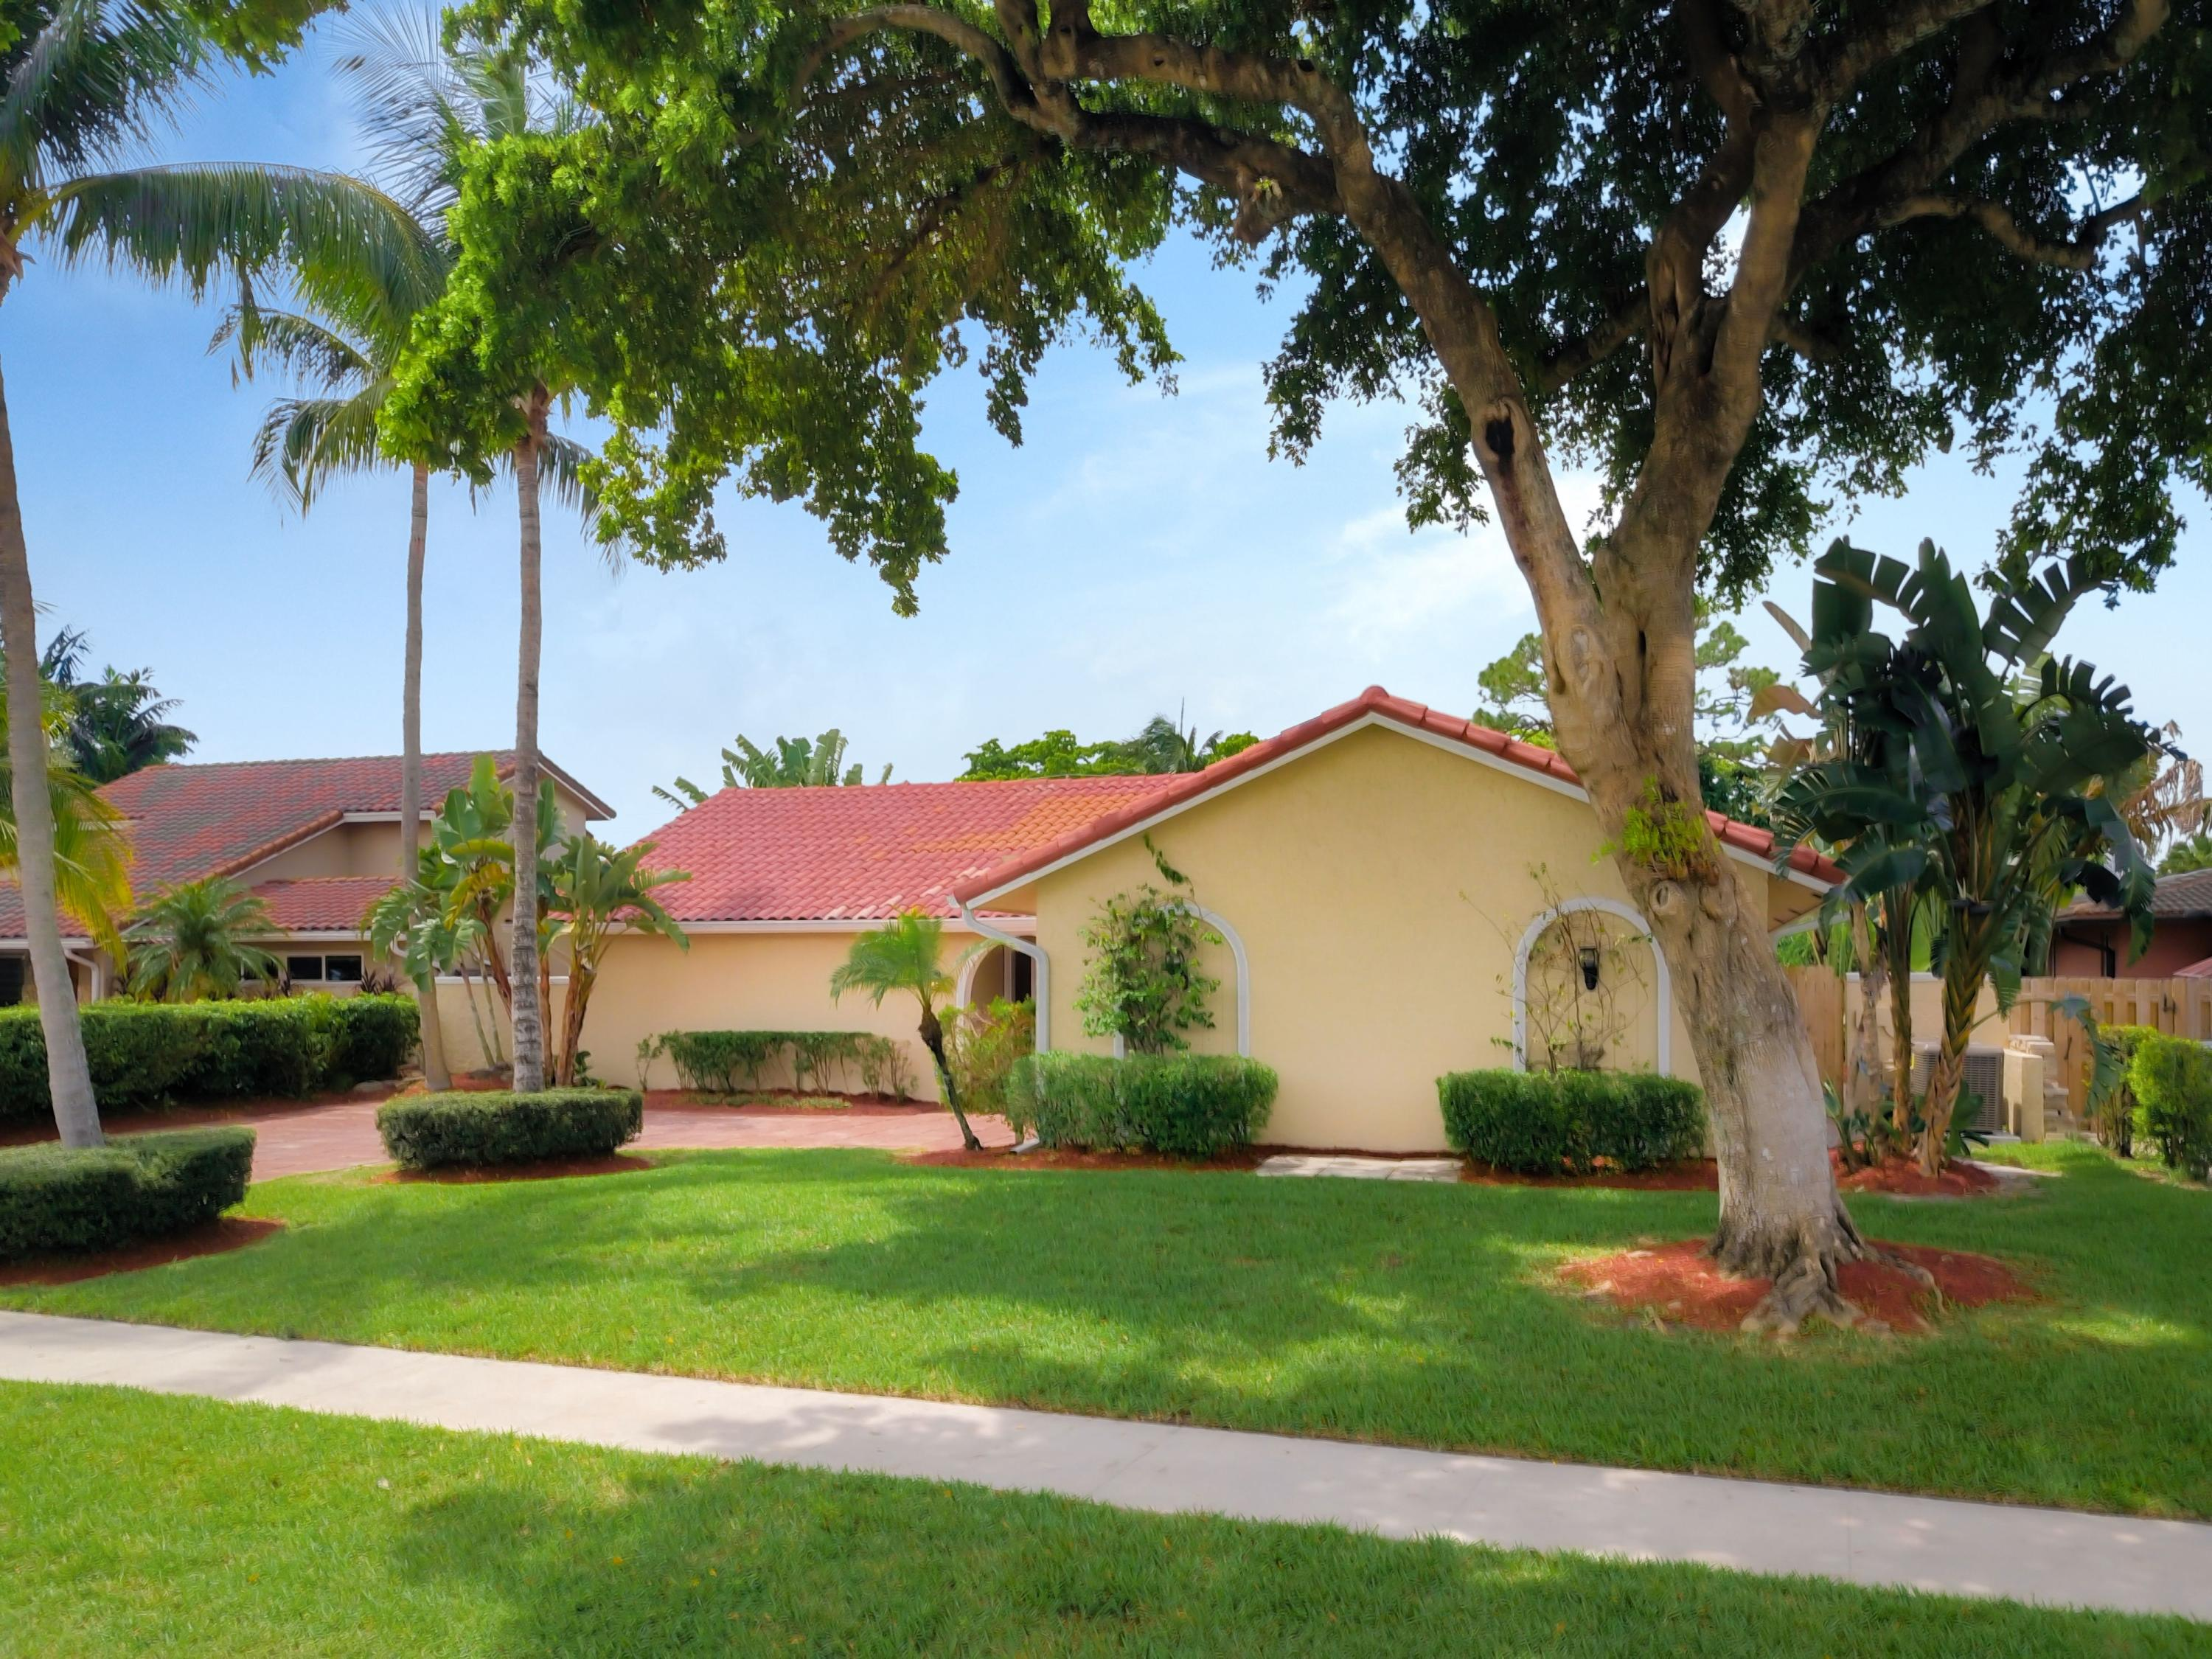 Home for sale in WIND DRIFT AS Boca Raton Florida